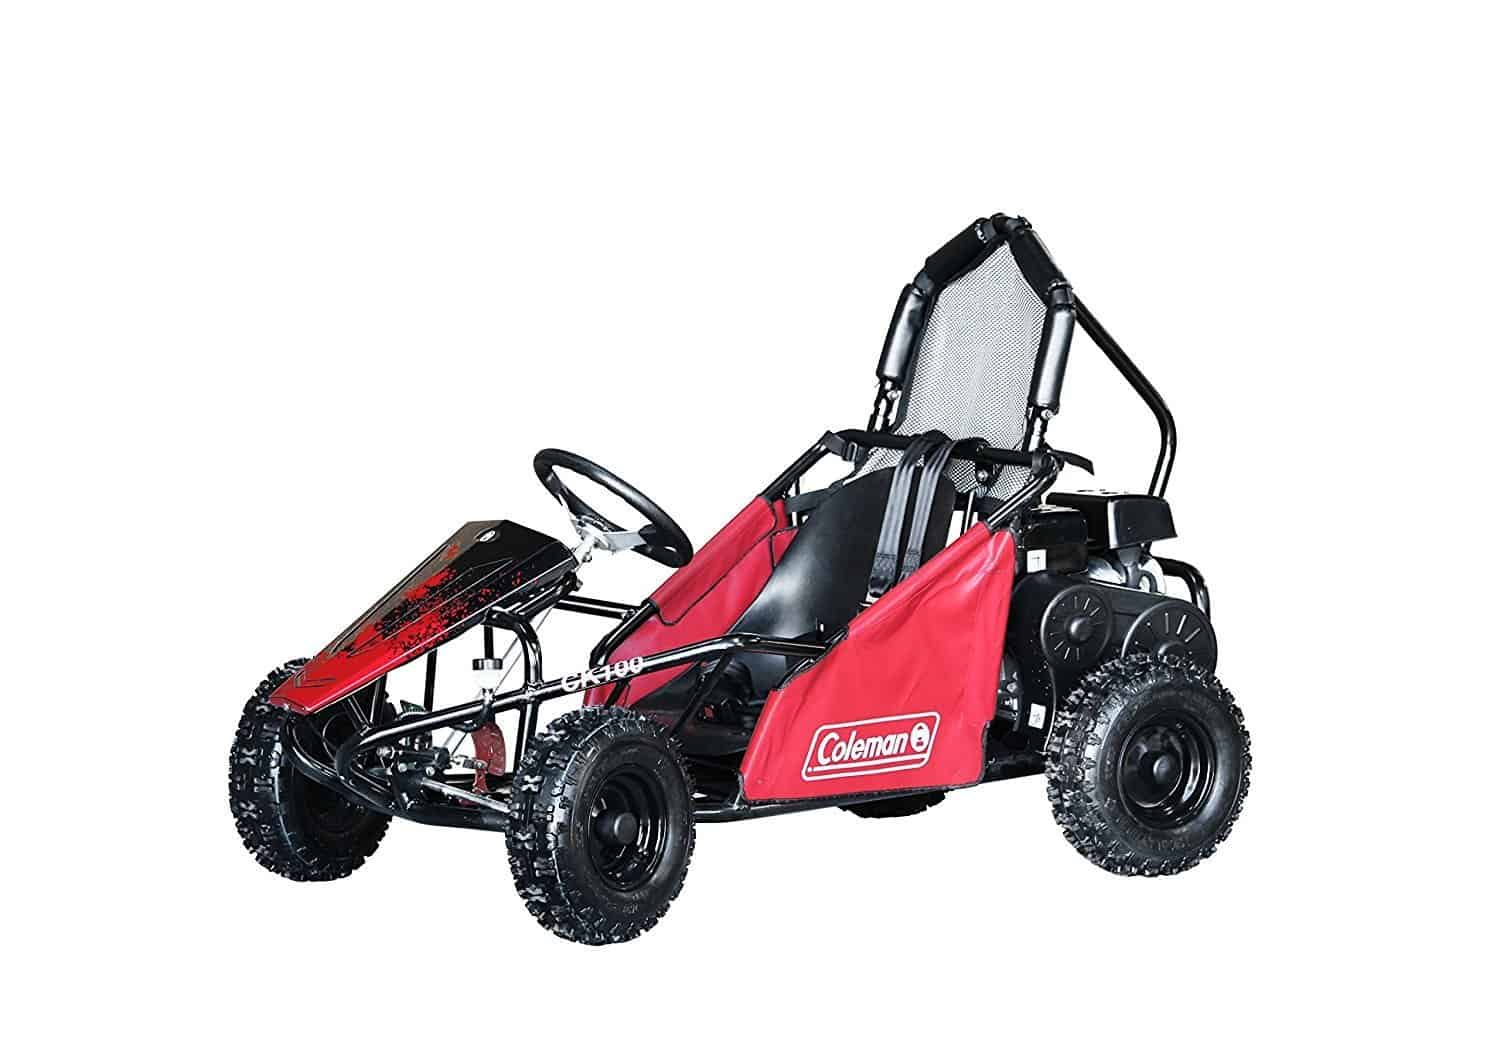 Kids Off Road Go Kart – Coleman Powersports CK100-S